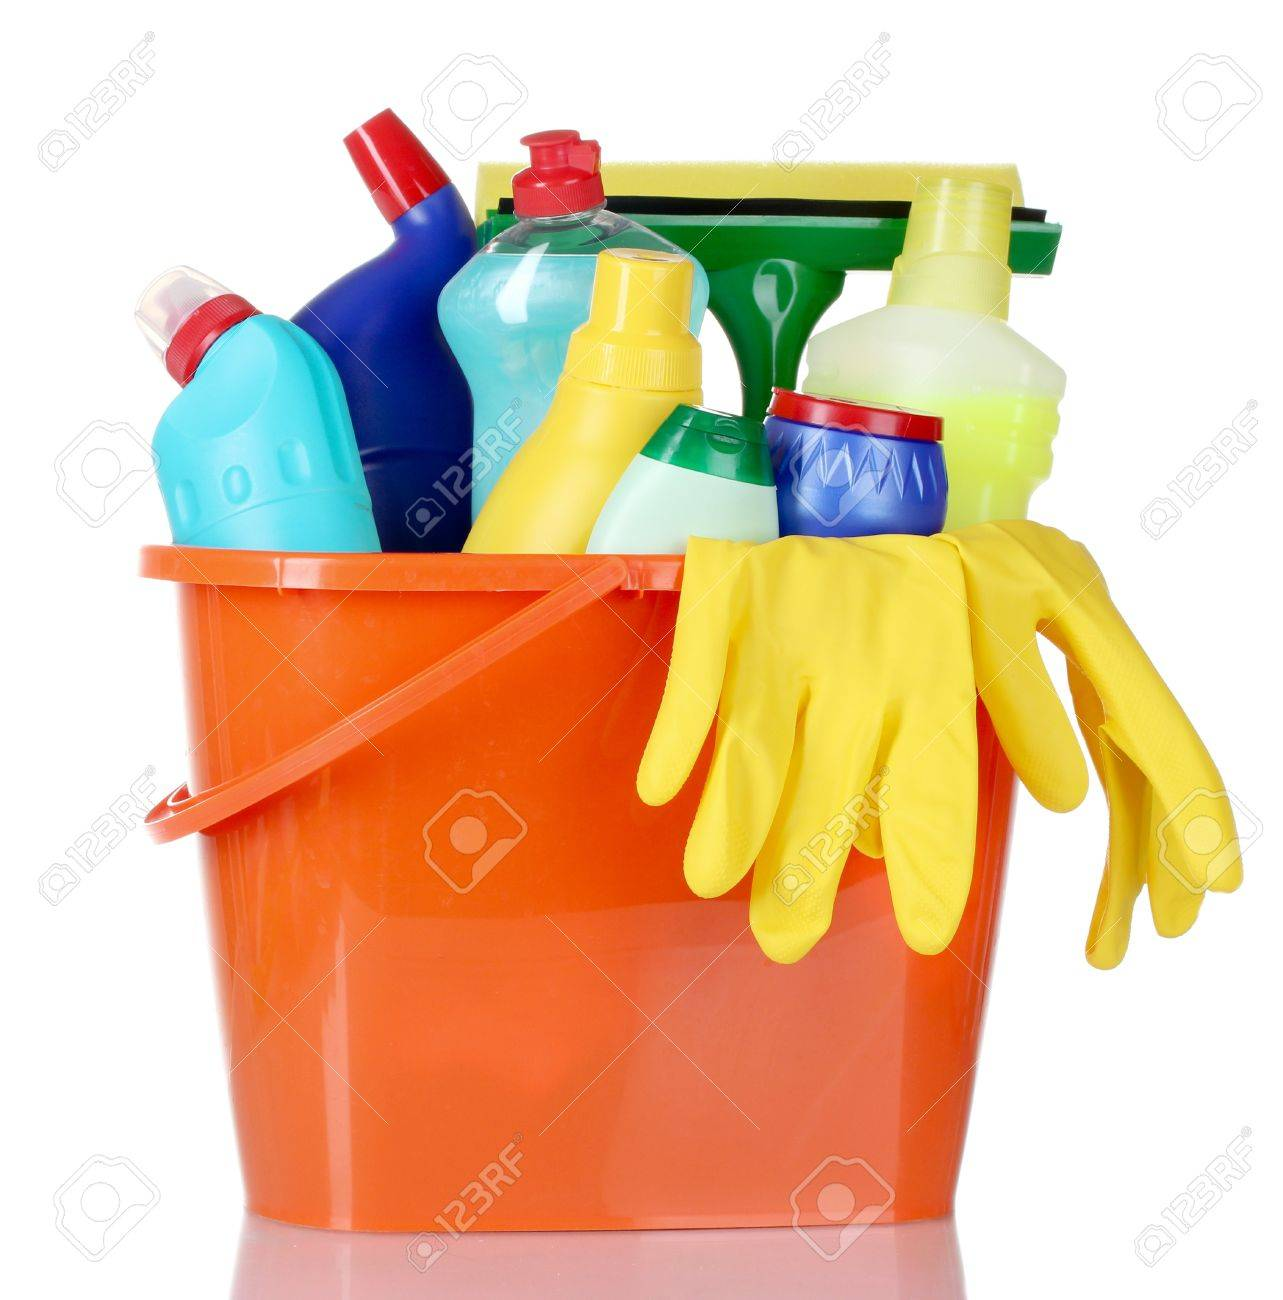 detergent bottles, brushes and gloves in bucket isolated on white Stock Photo - 10354175